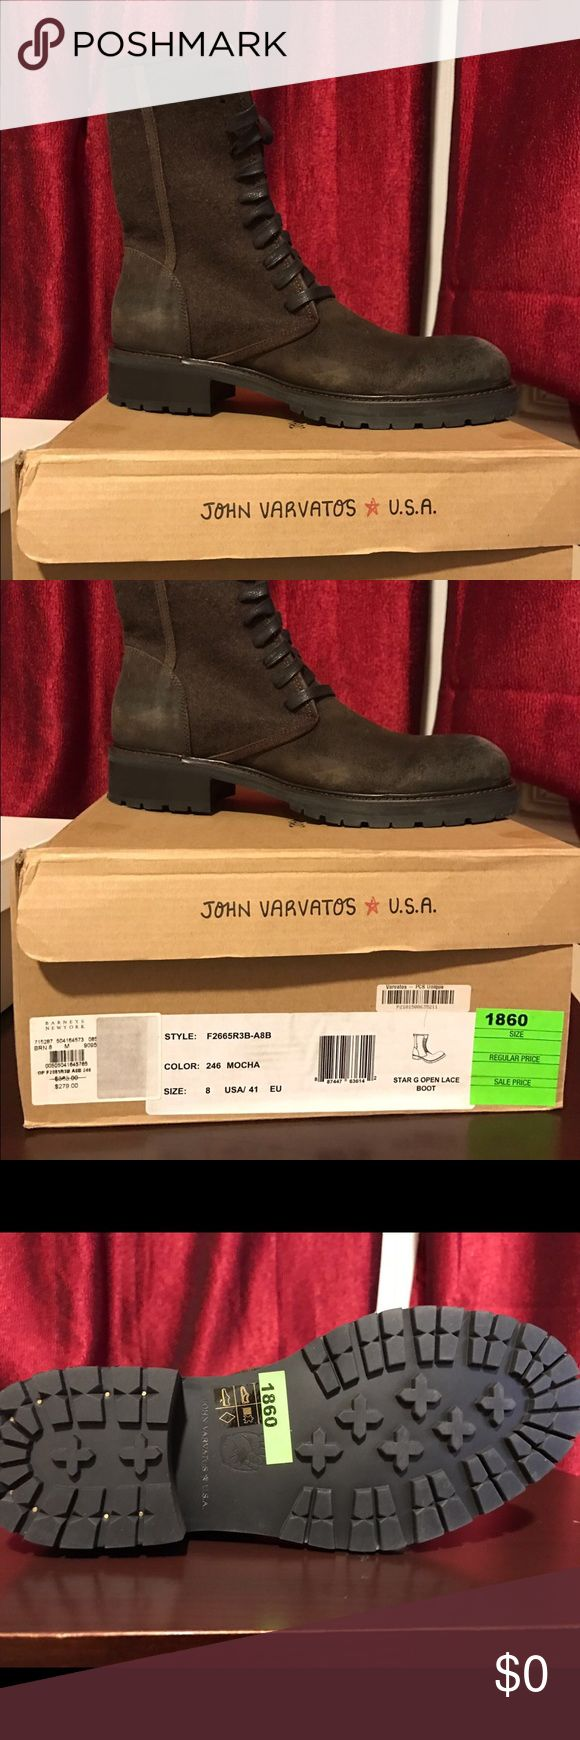 Men size 8 boots for sale Barney NY company men boots for sale, size 8 brand new John Varvatos Shoes Boots